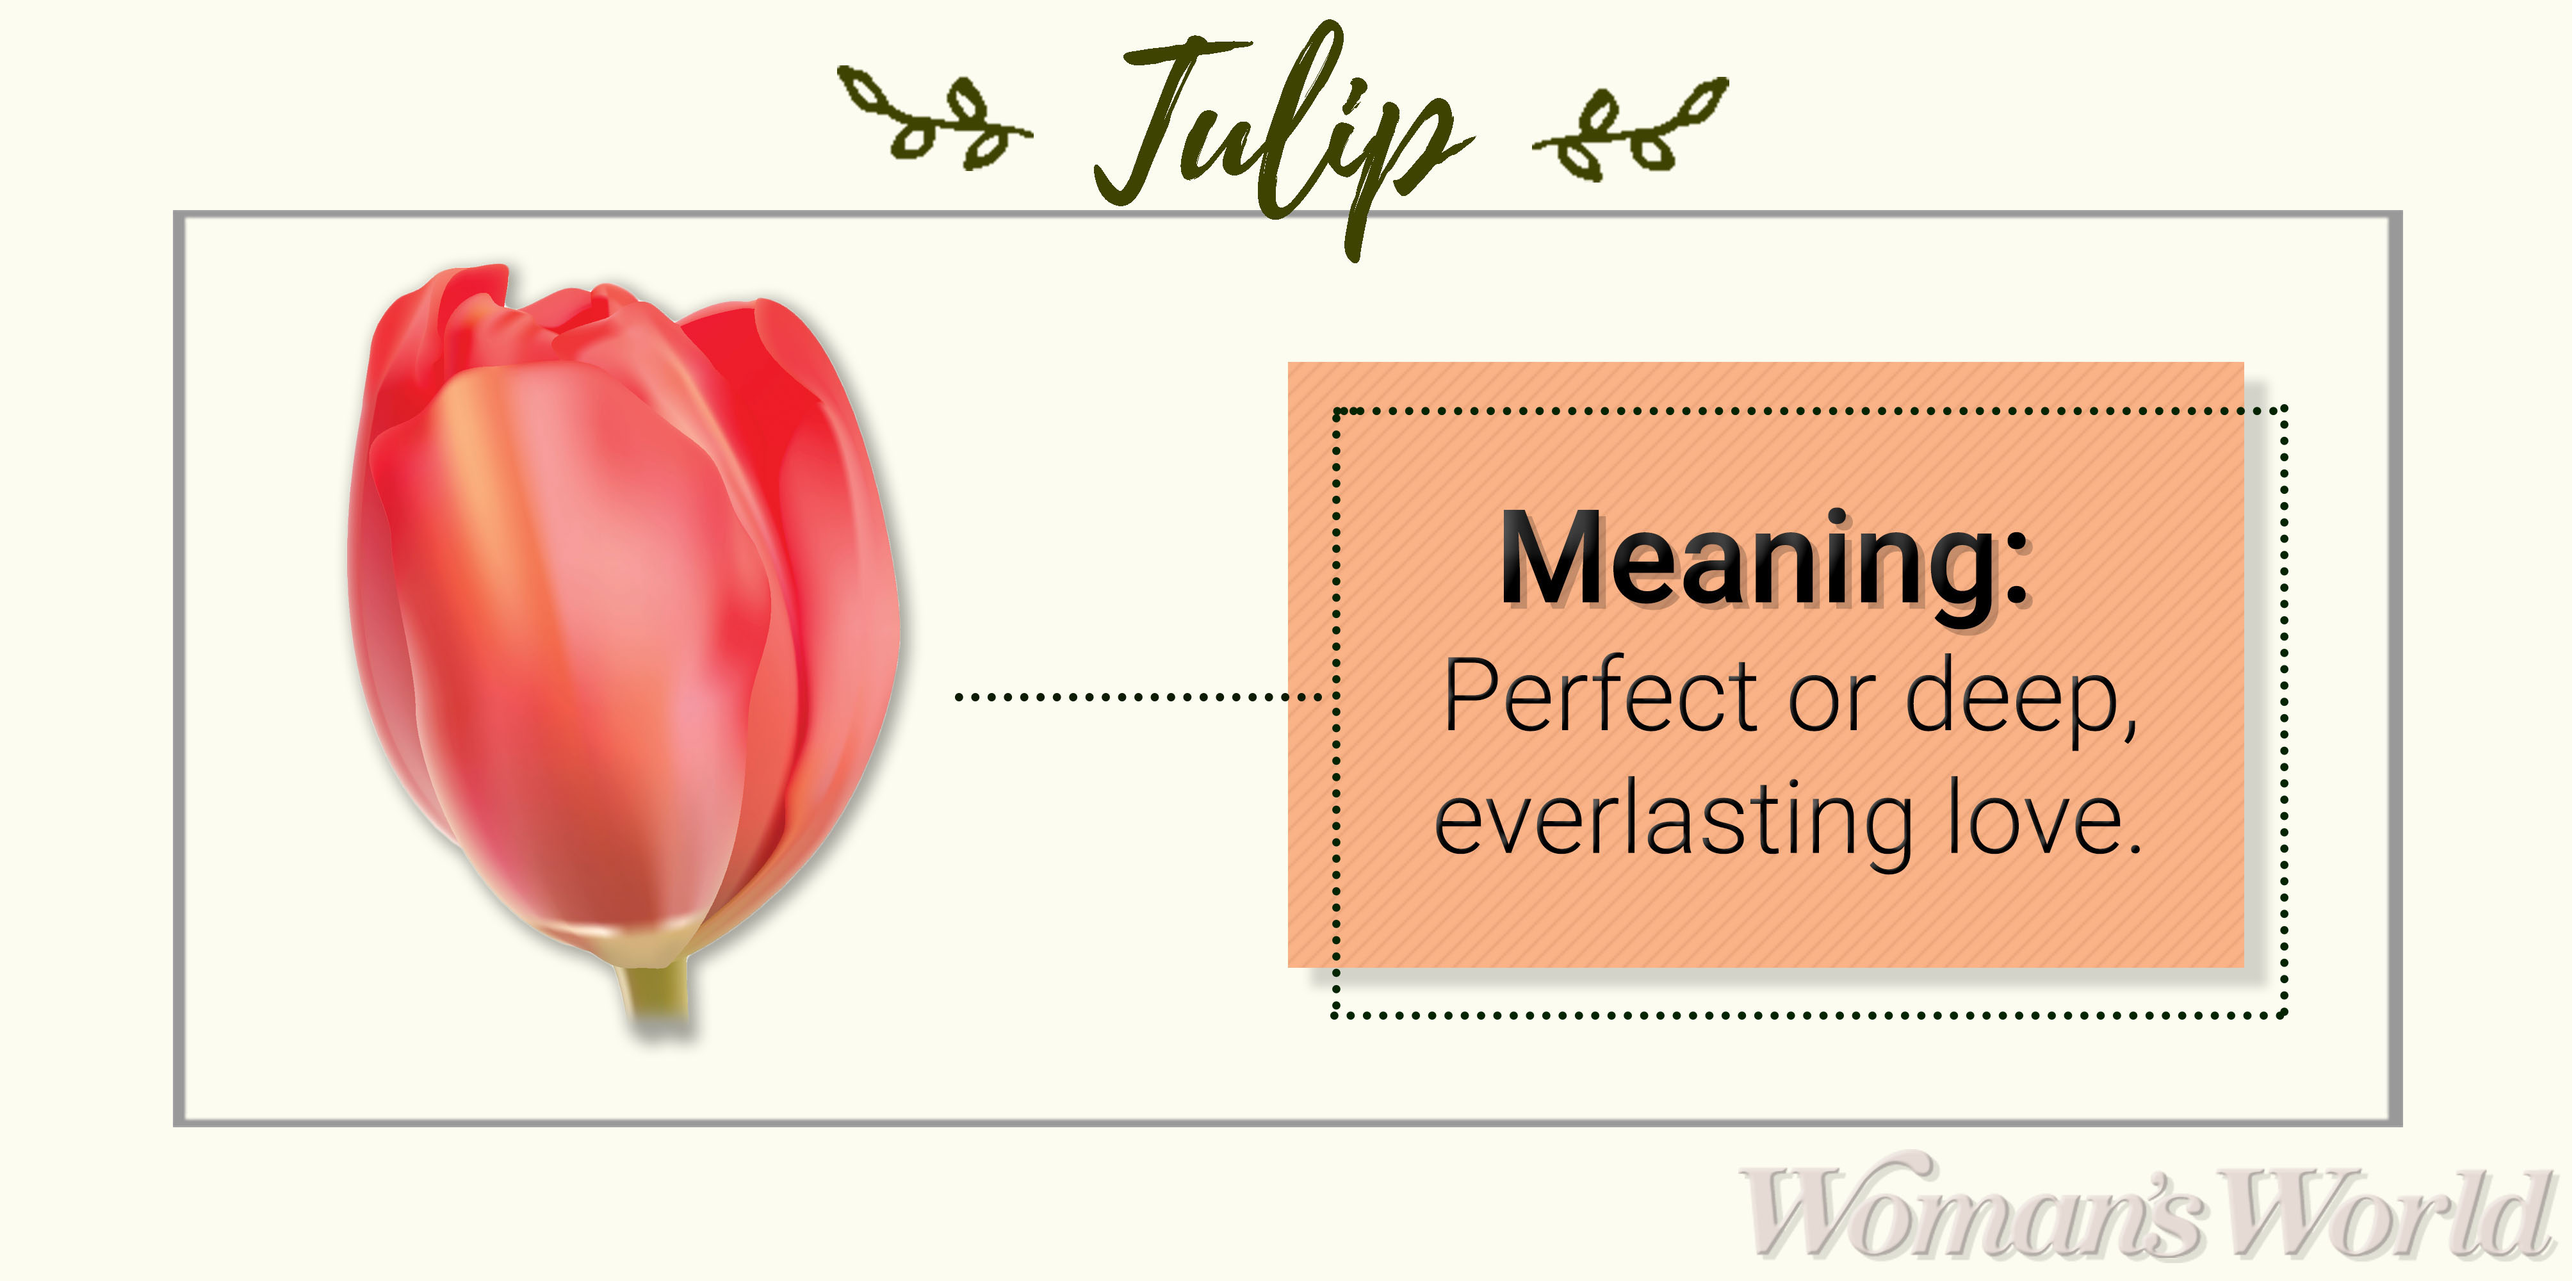 Tulip Meaning